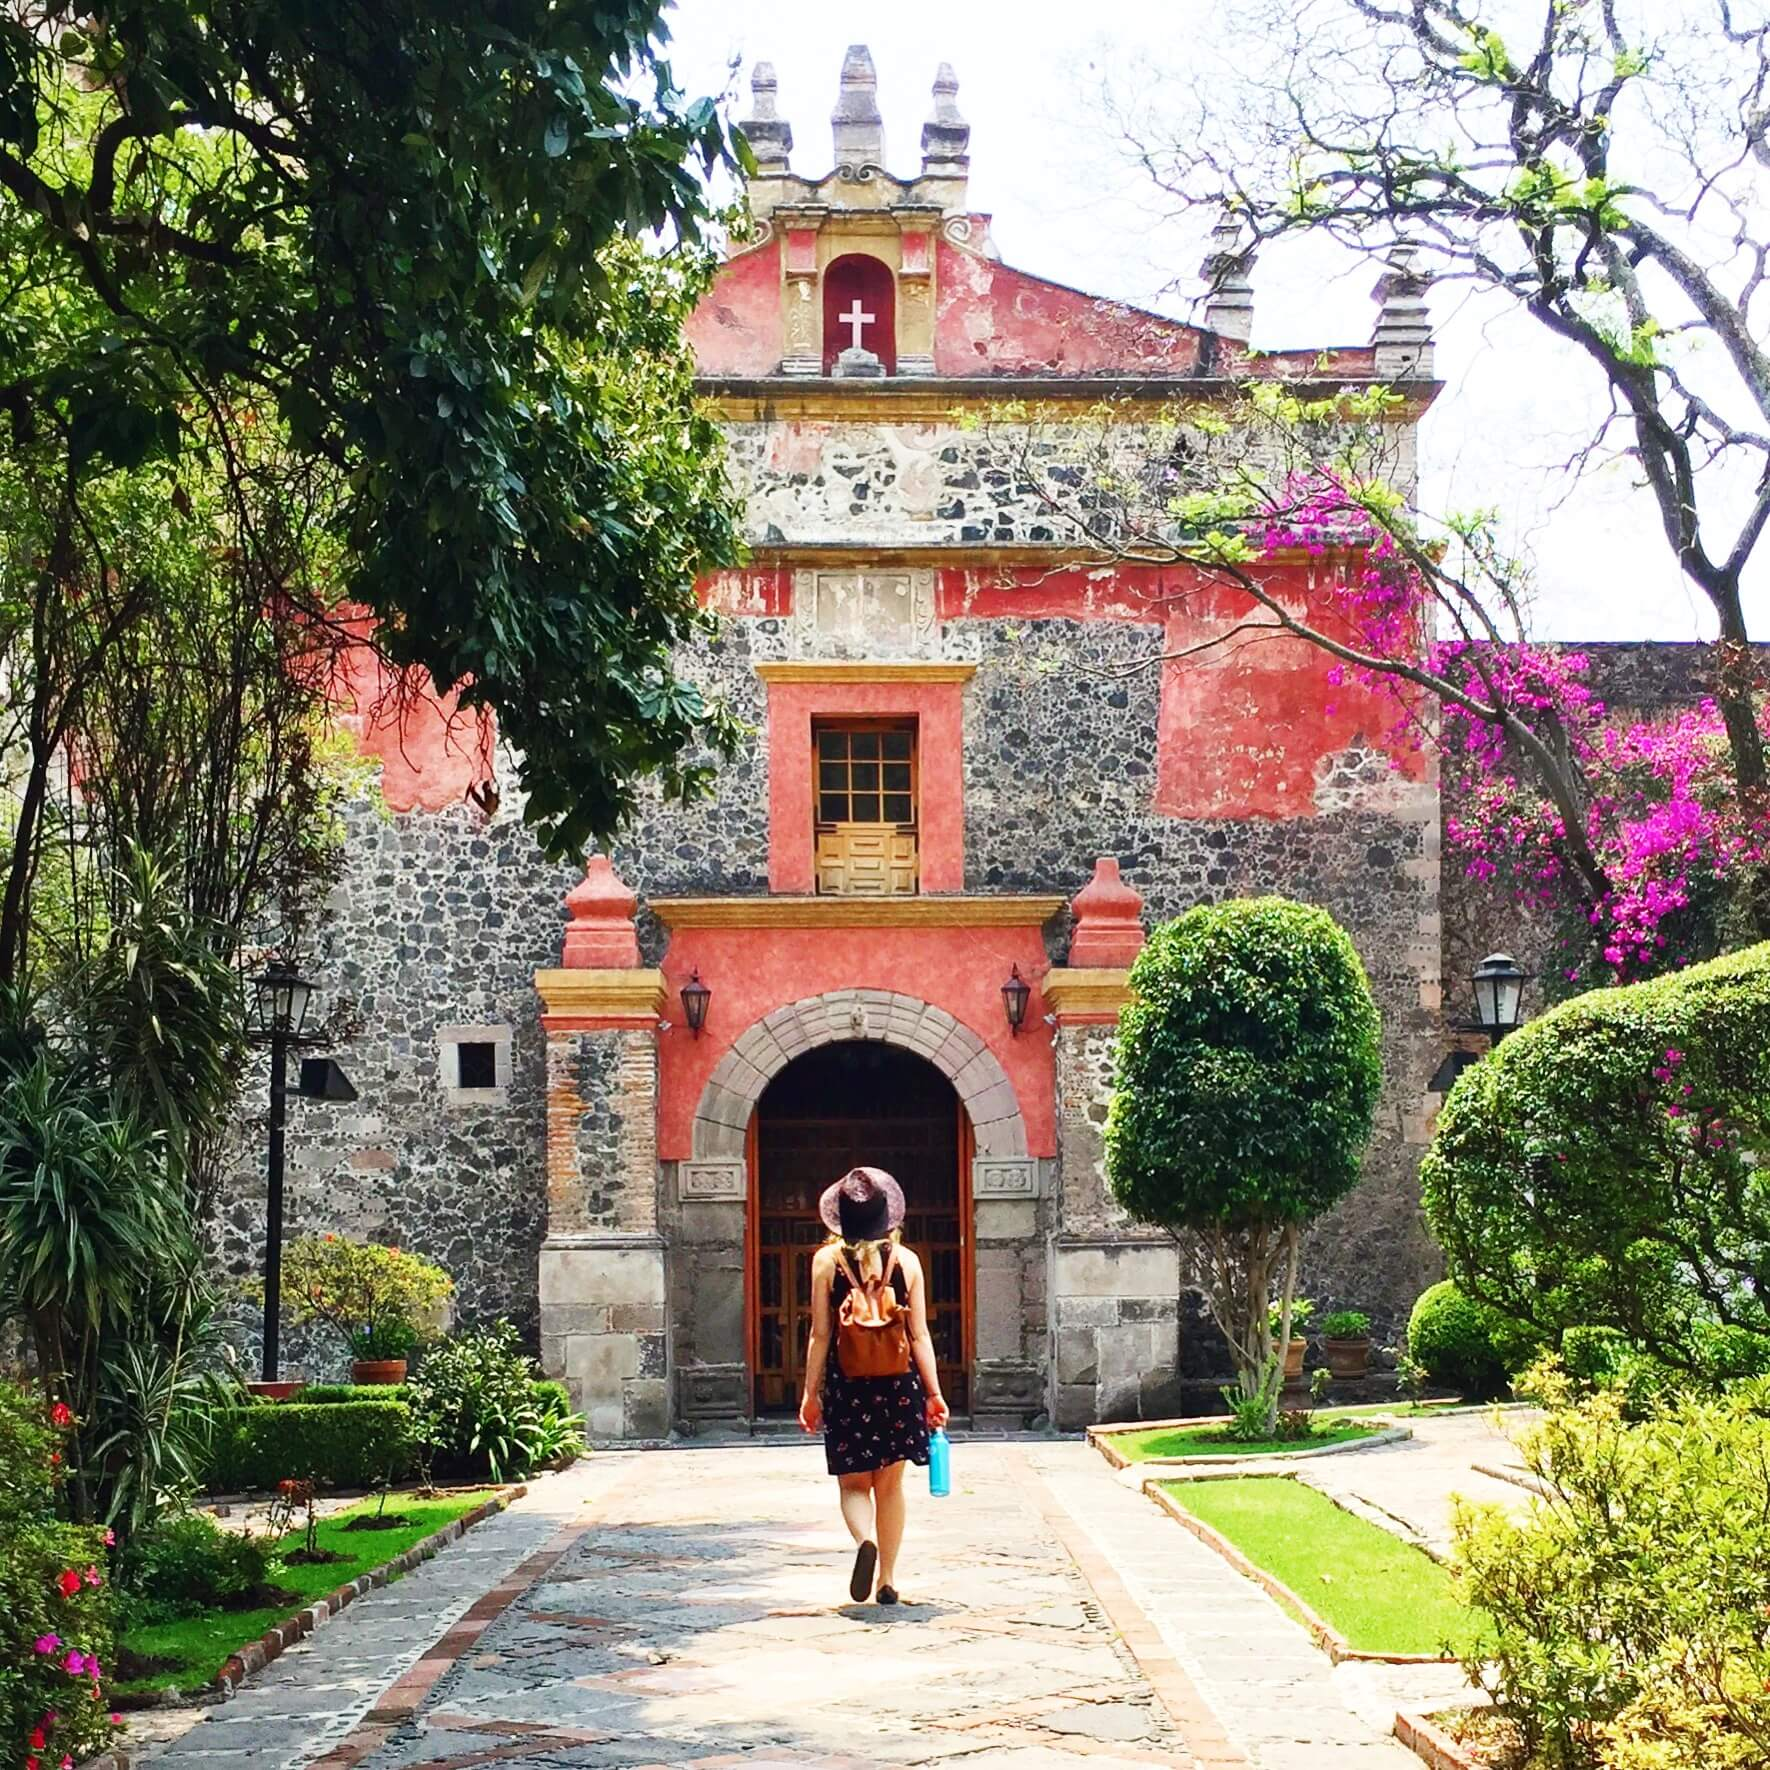 Mexico City San Angel | Travel with Anxiety